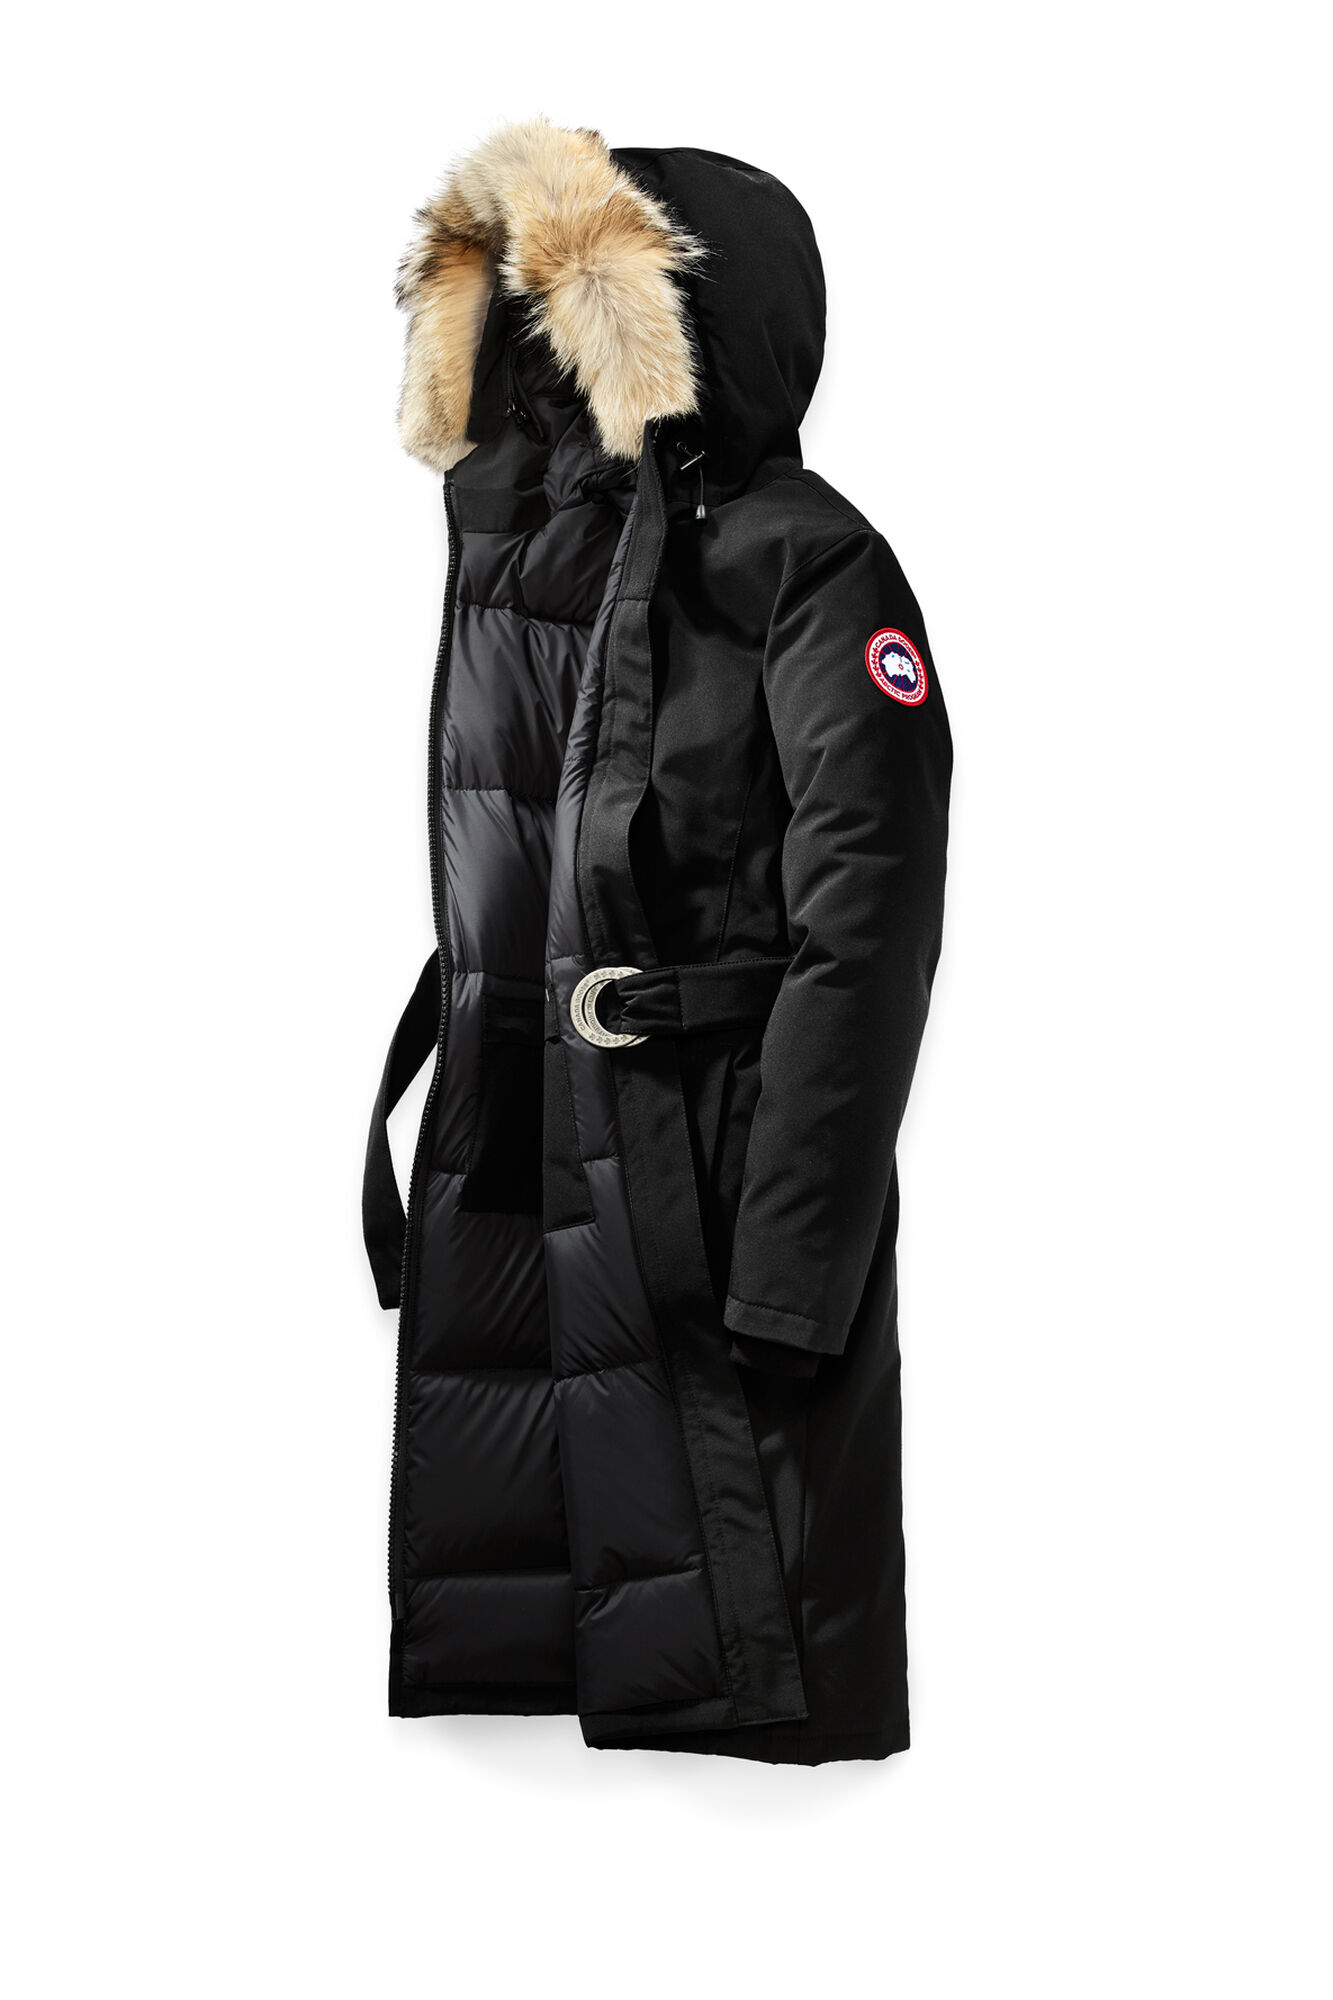 Canada Goose' shop 5th